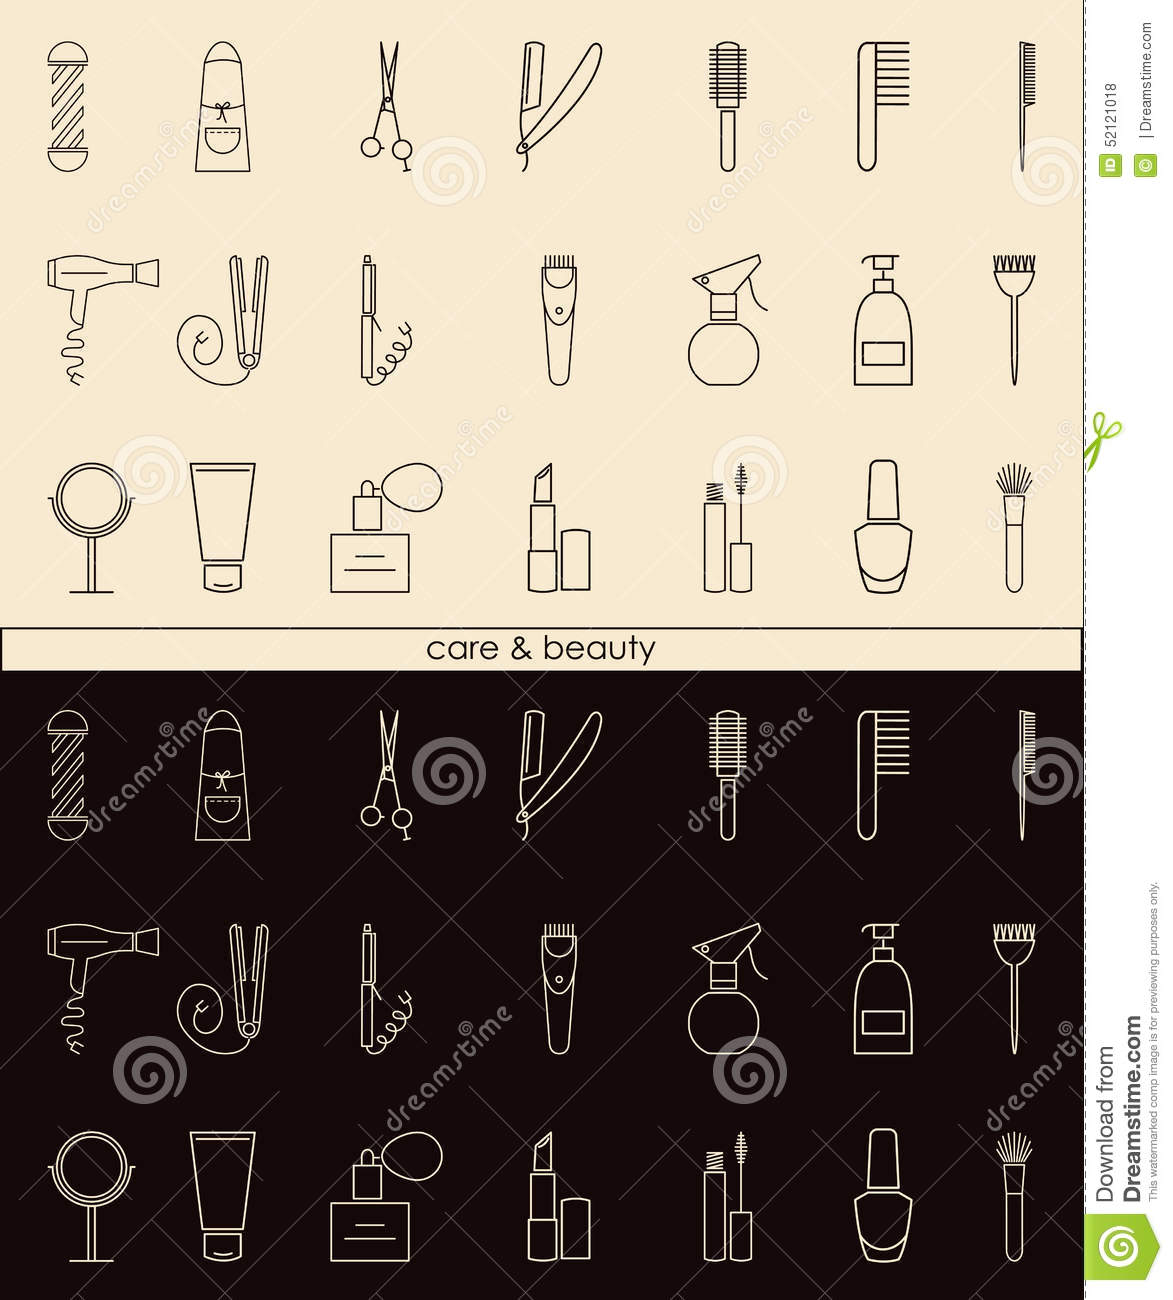 Care&Beauty linear icons for barber shop or beauty salon.